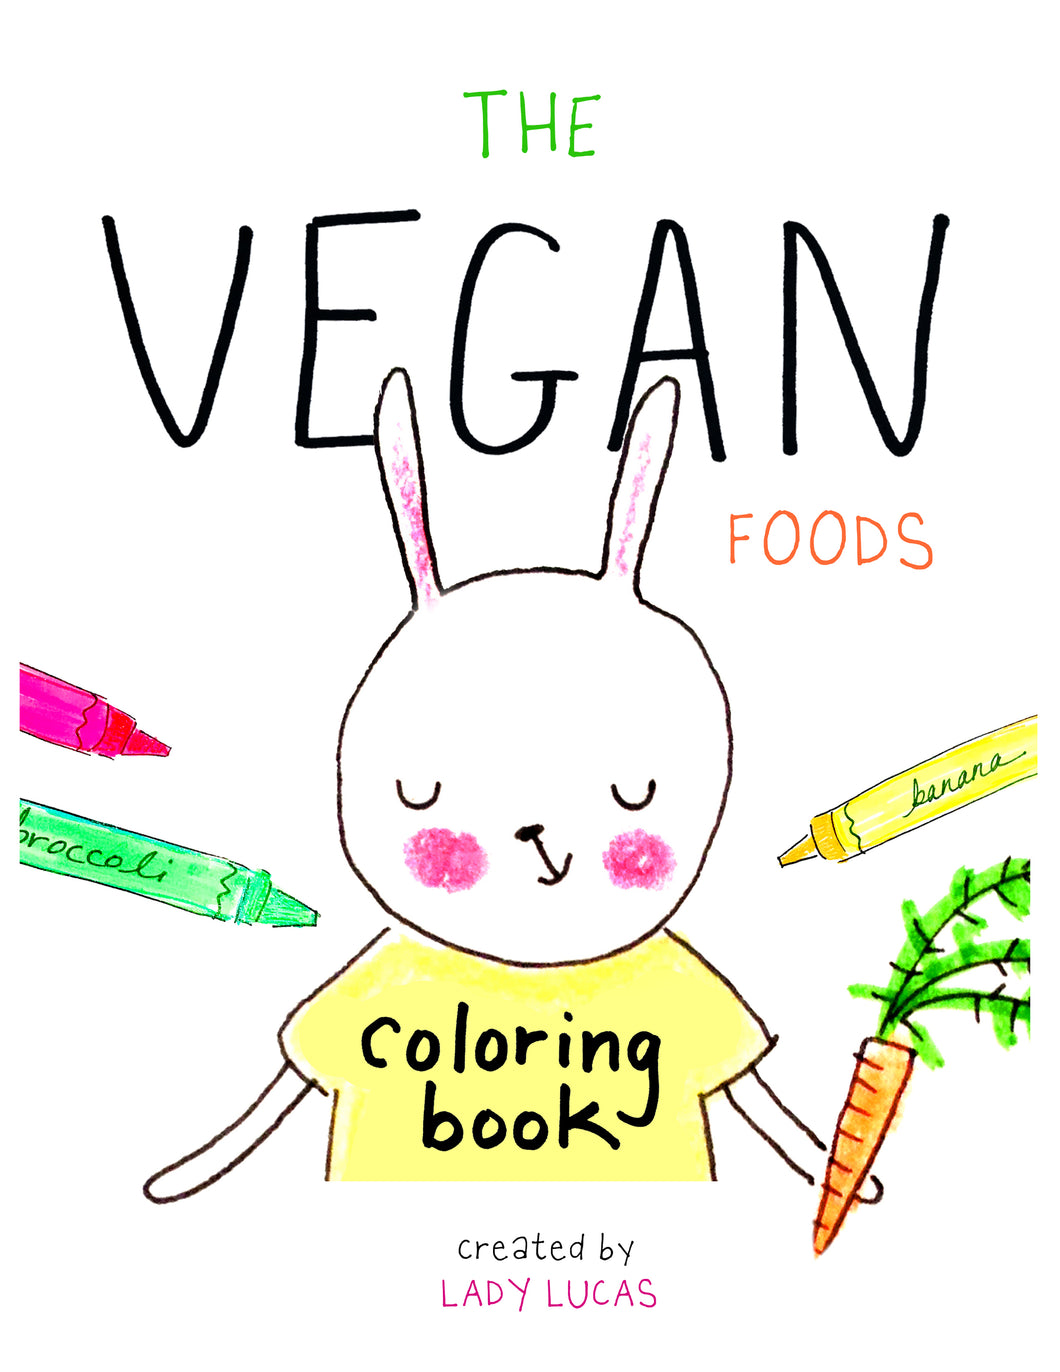 Vegan Foods Printable Coloring Book